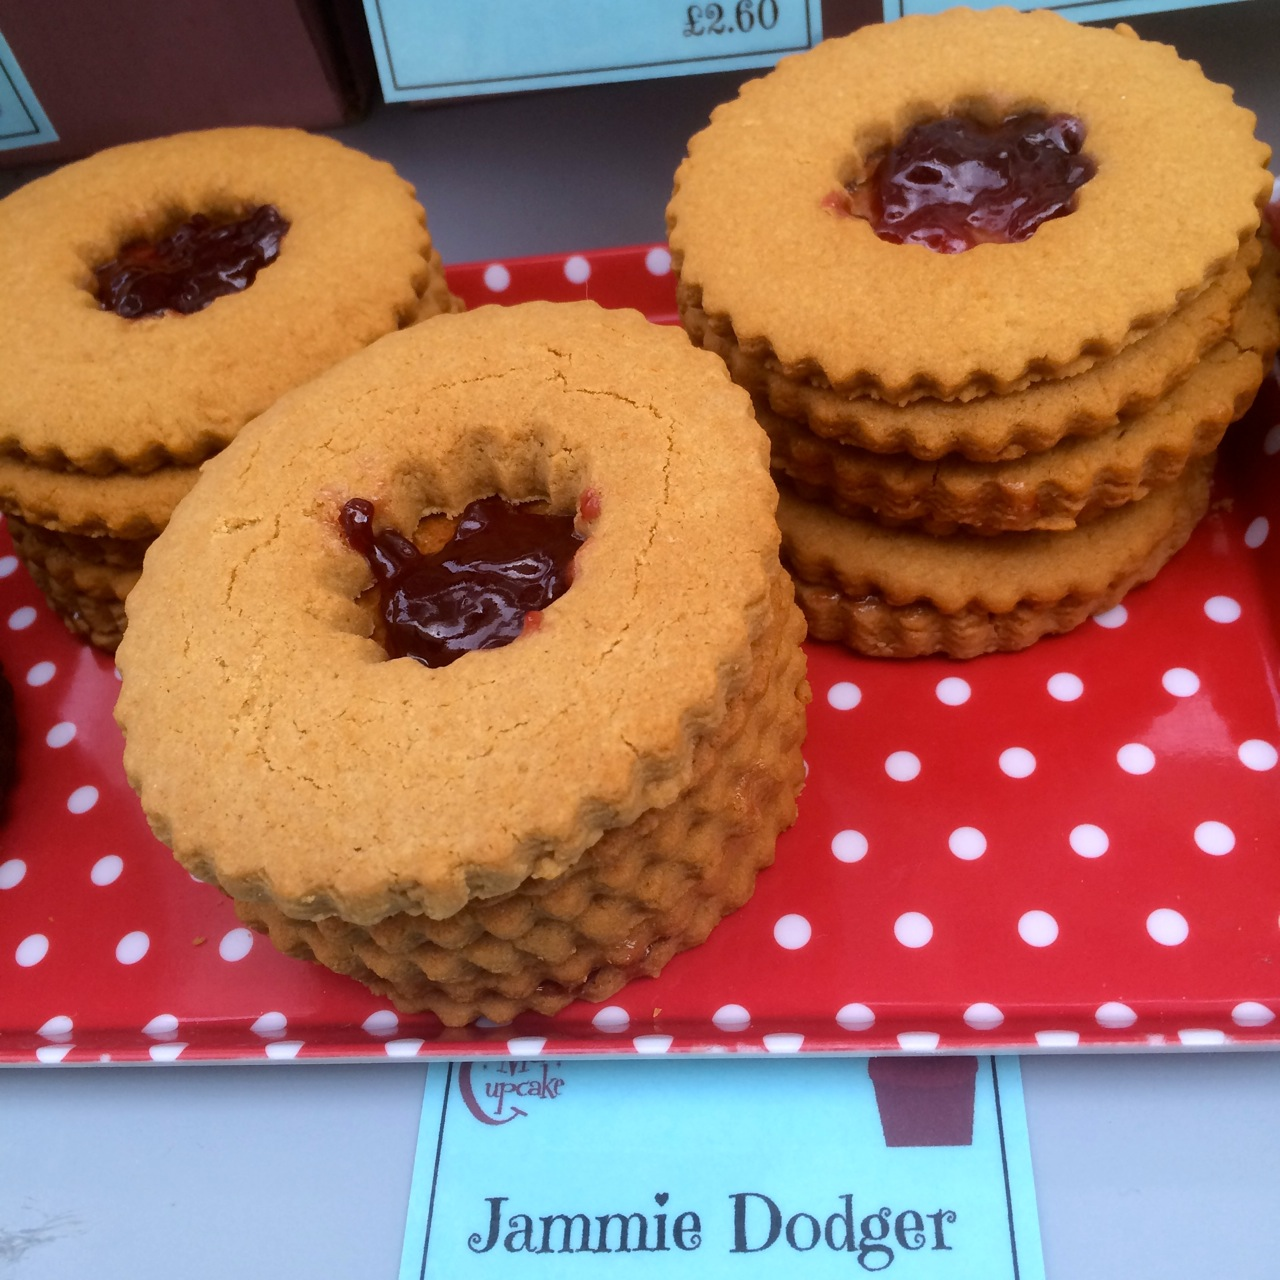 https://i2.wp.com/fatgayvegan.com/wp-content/uploads/2015/07/Jammie-Dodgers-by-Ms-Cupcake-at-Just-V-Show.jpg?fit=1280%2C1280